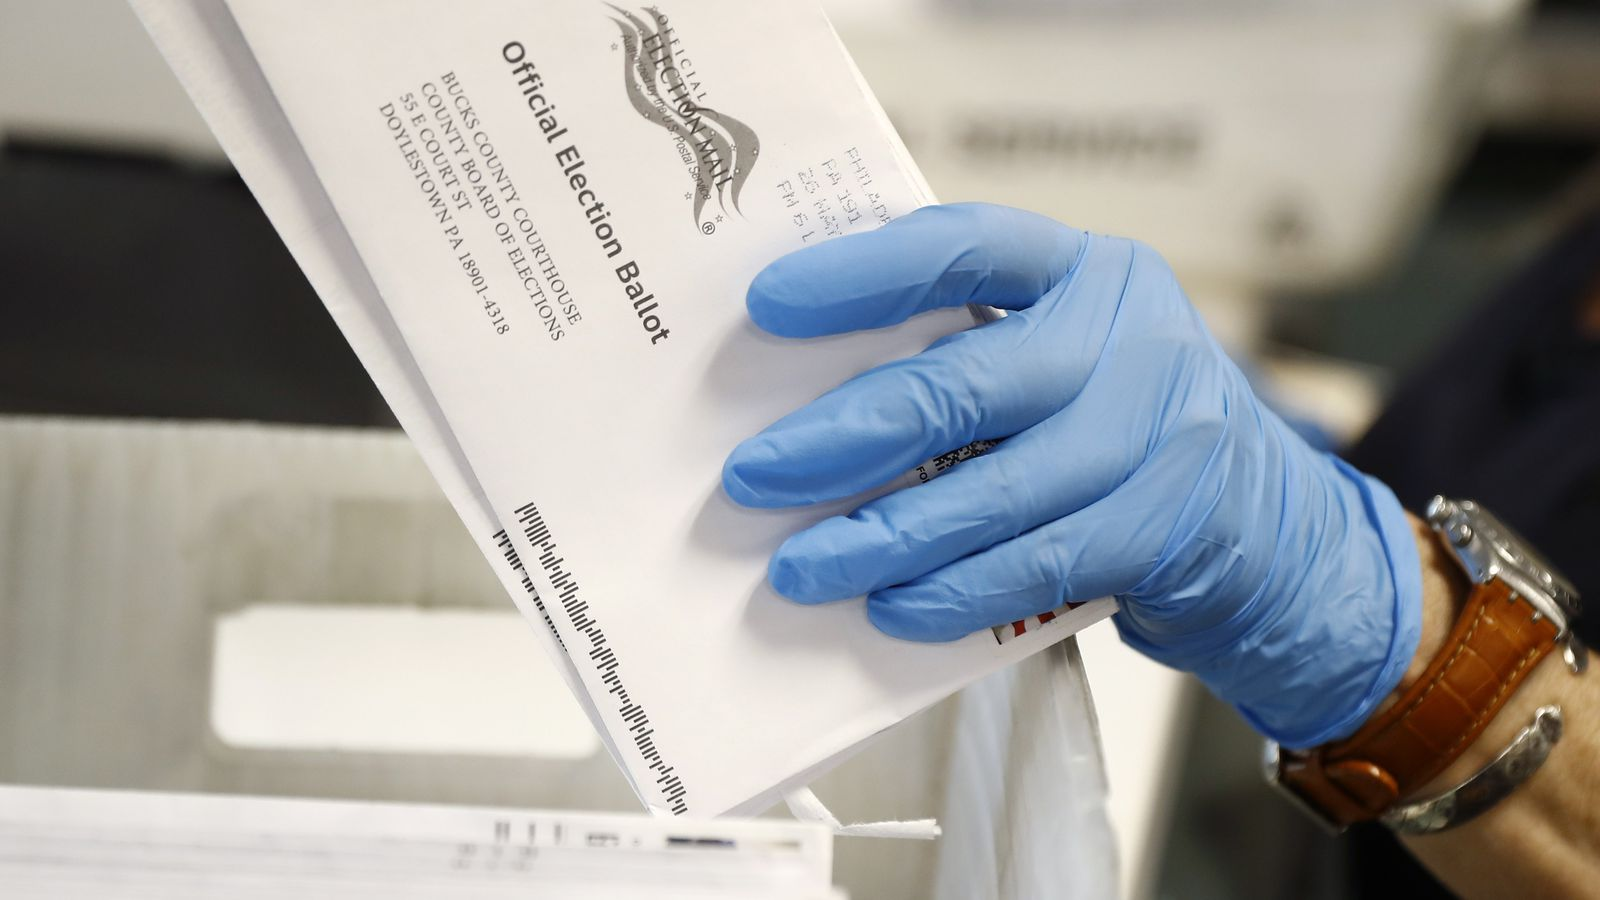 In Swing States Like Florida Mail Ballot Rejection Rates Could Triple